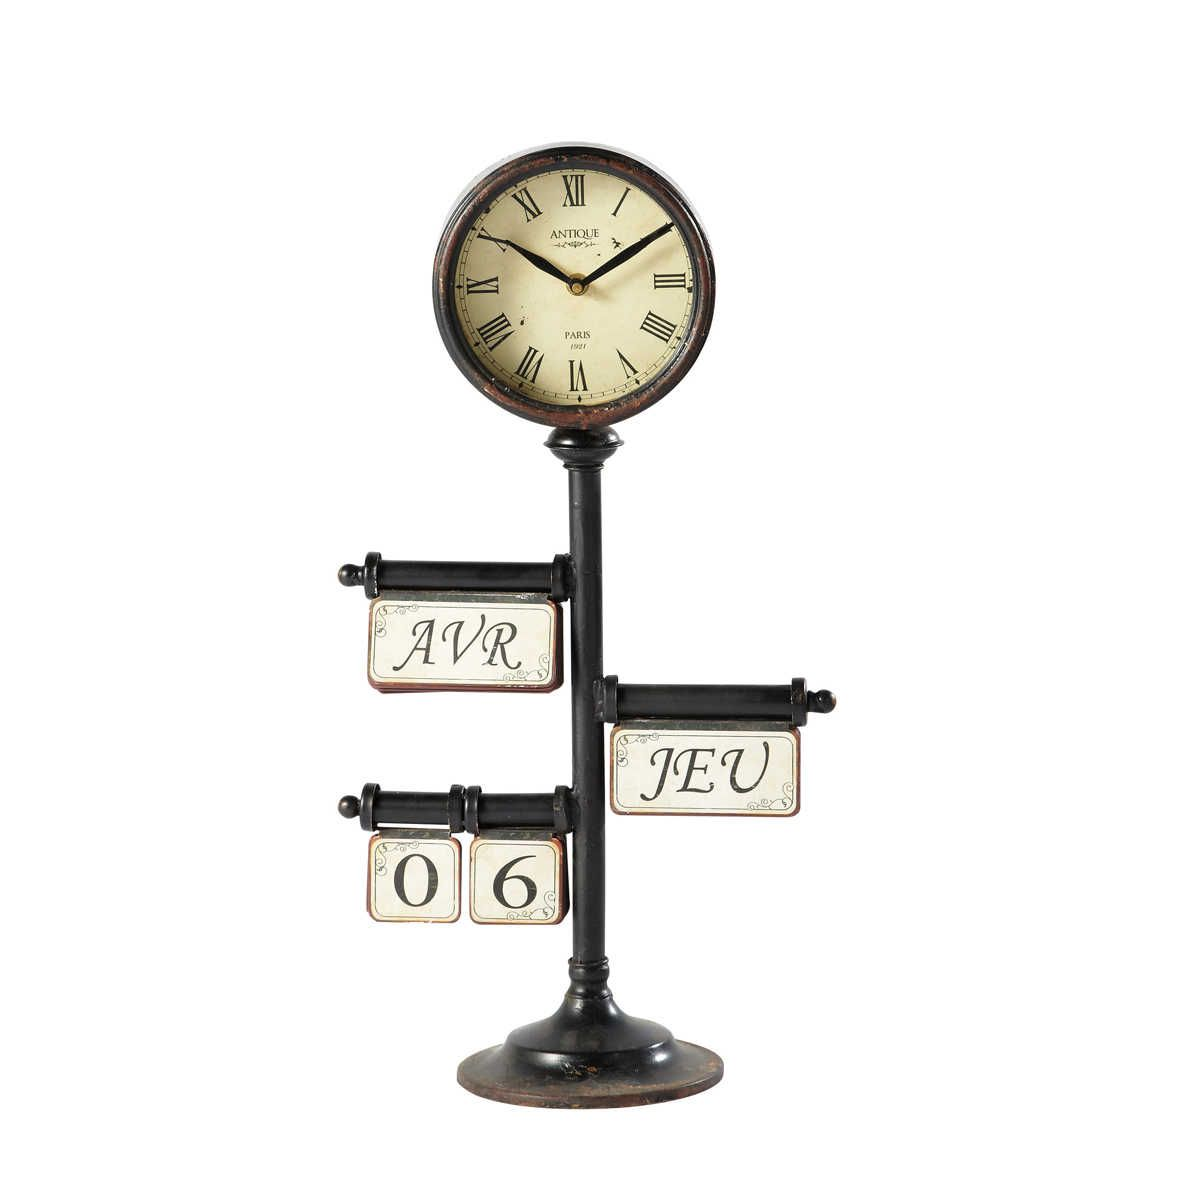 maison du monde ambiance industrielle horloge calendrier poser en m tal noire d 30 cm zo. Black Bedroom Furniture Sets. Home Design Ideas